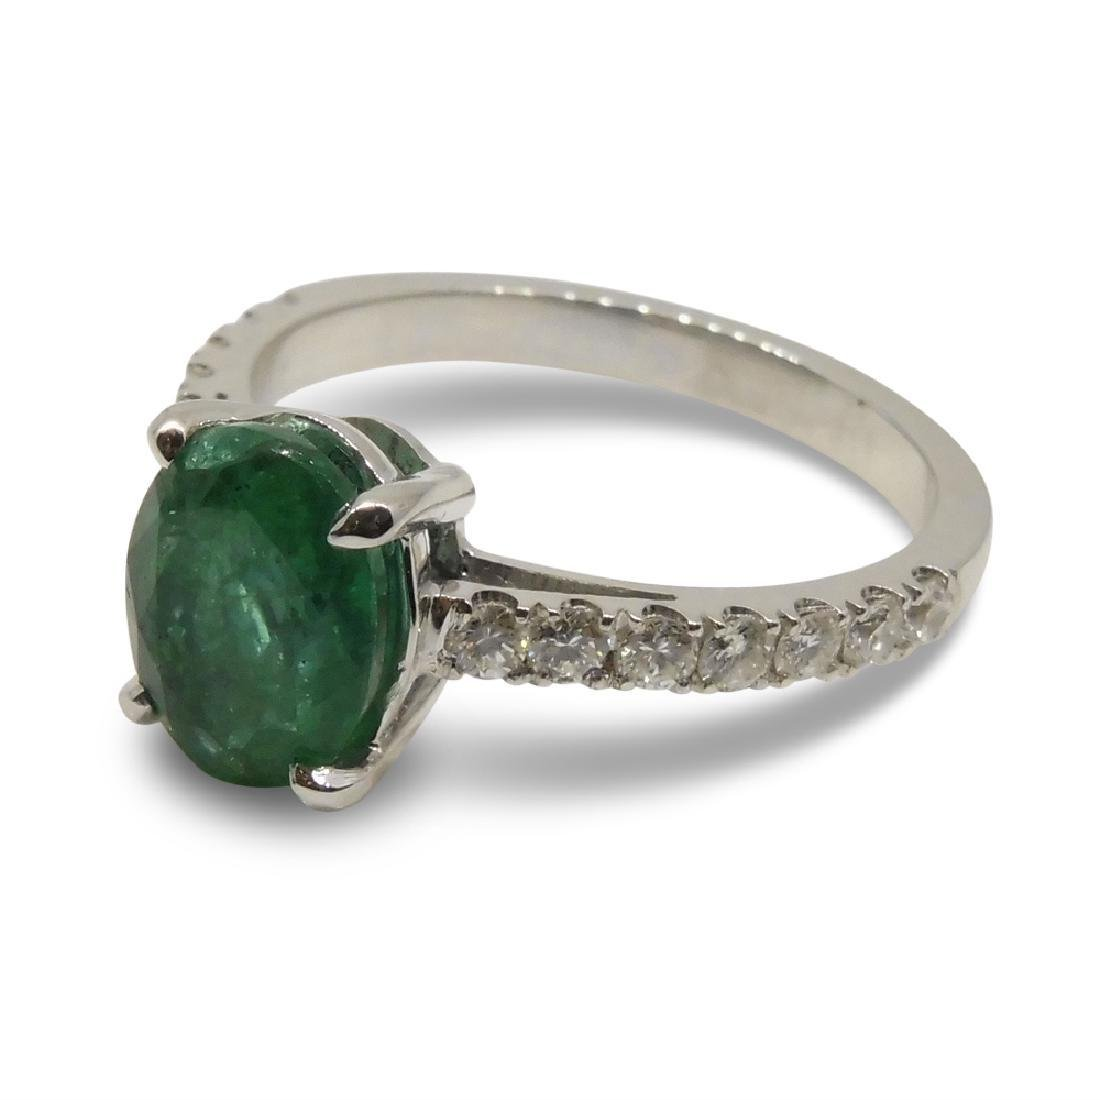 14K White Gold Emerald Diamond Ring, 1.82ct - 10